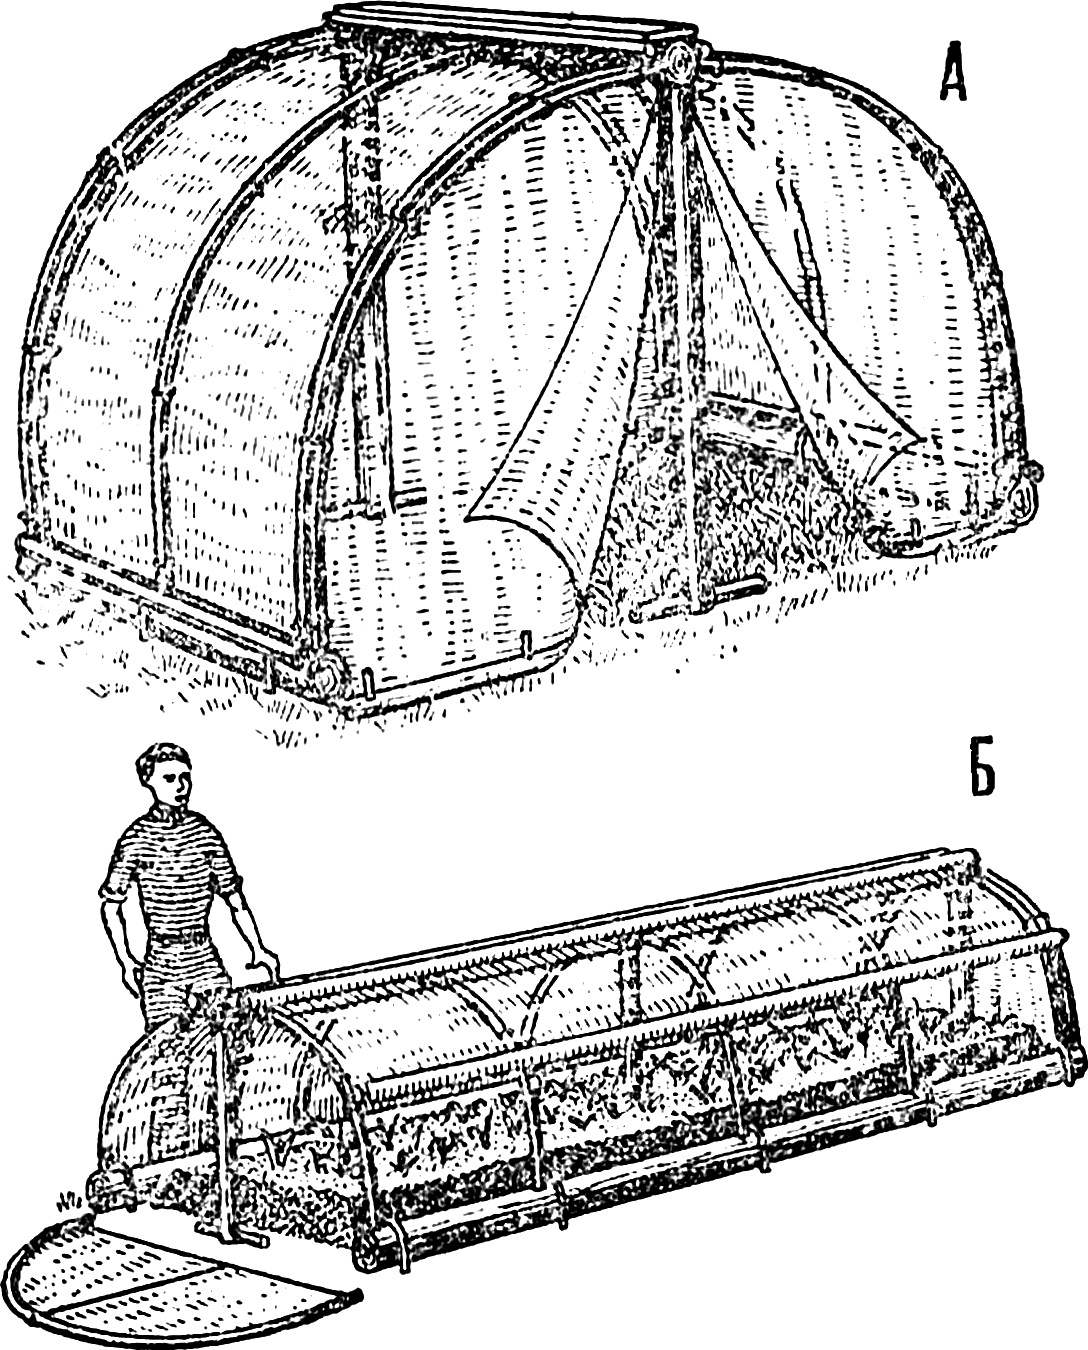 Fig. 1. The use of arched design on the basis of flexible rods.